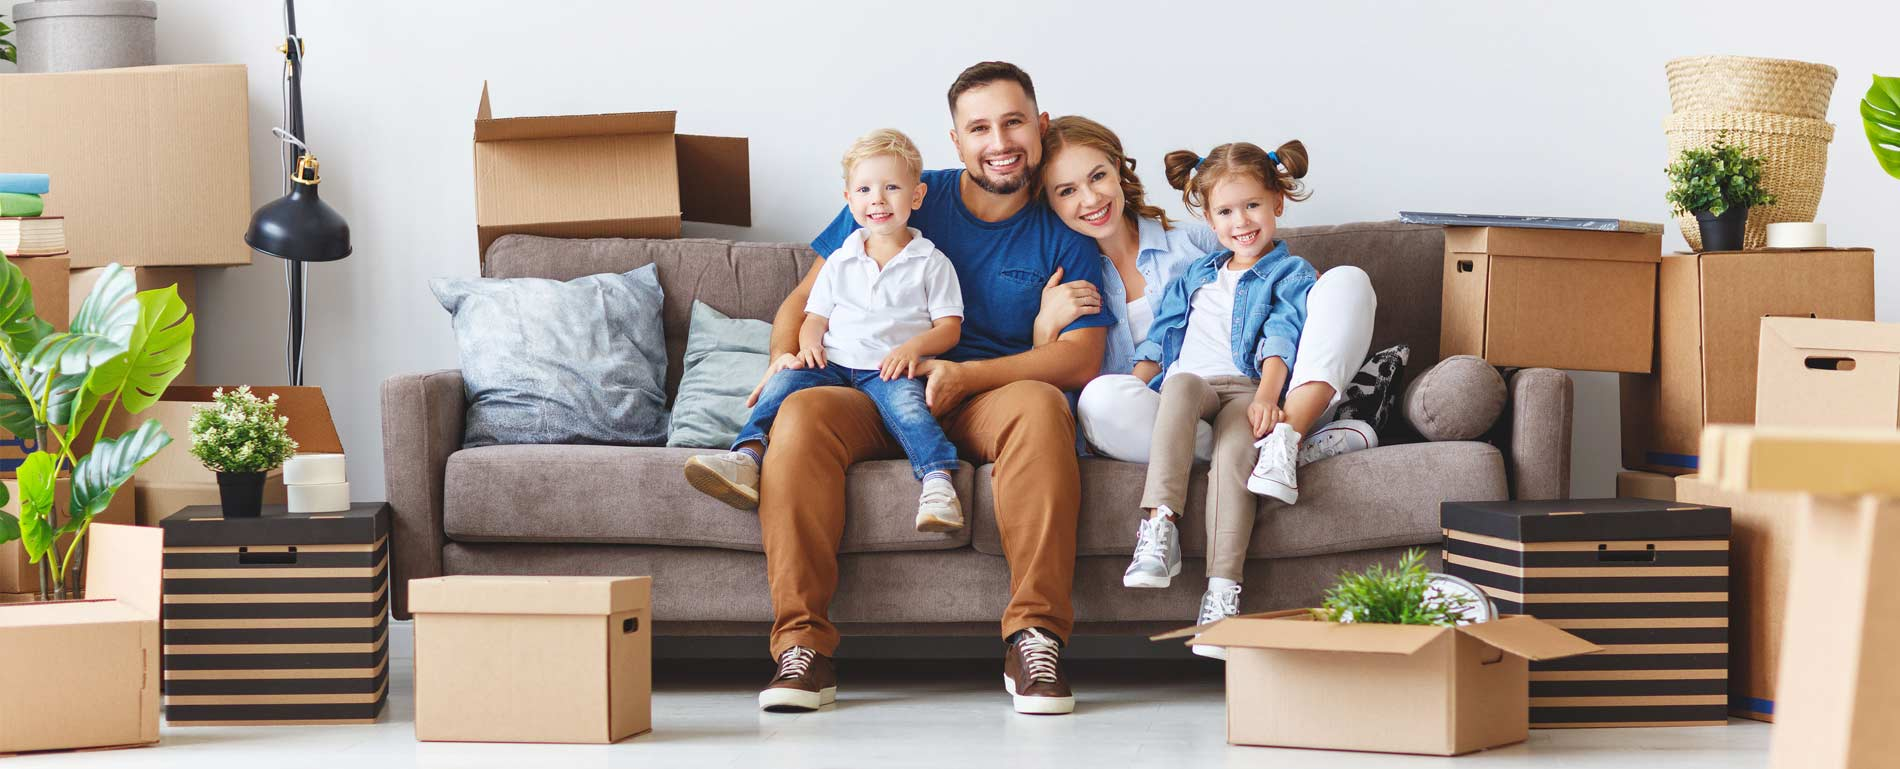 moving house organising services